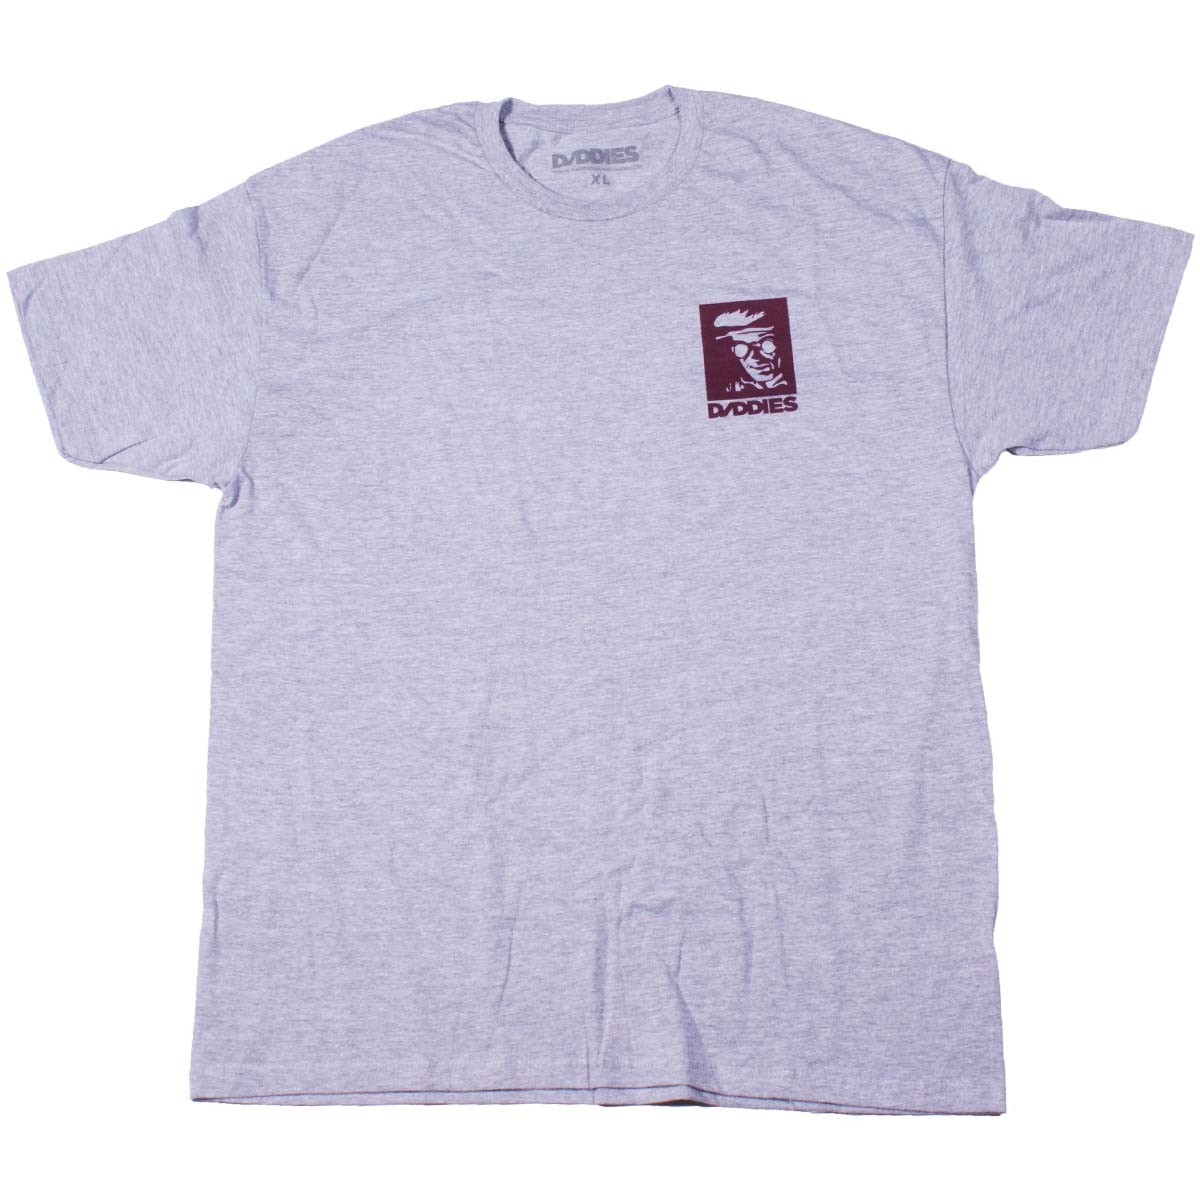 Daddies Board Shop Pocket Welder T-Shirt - Grey